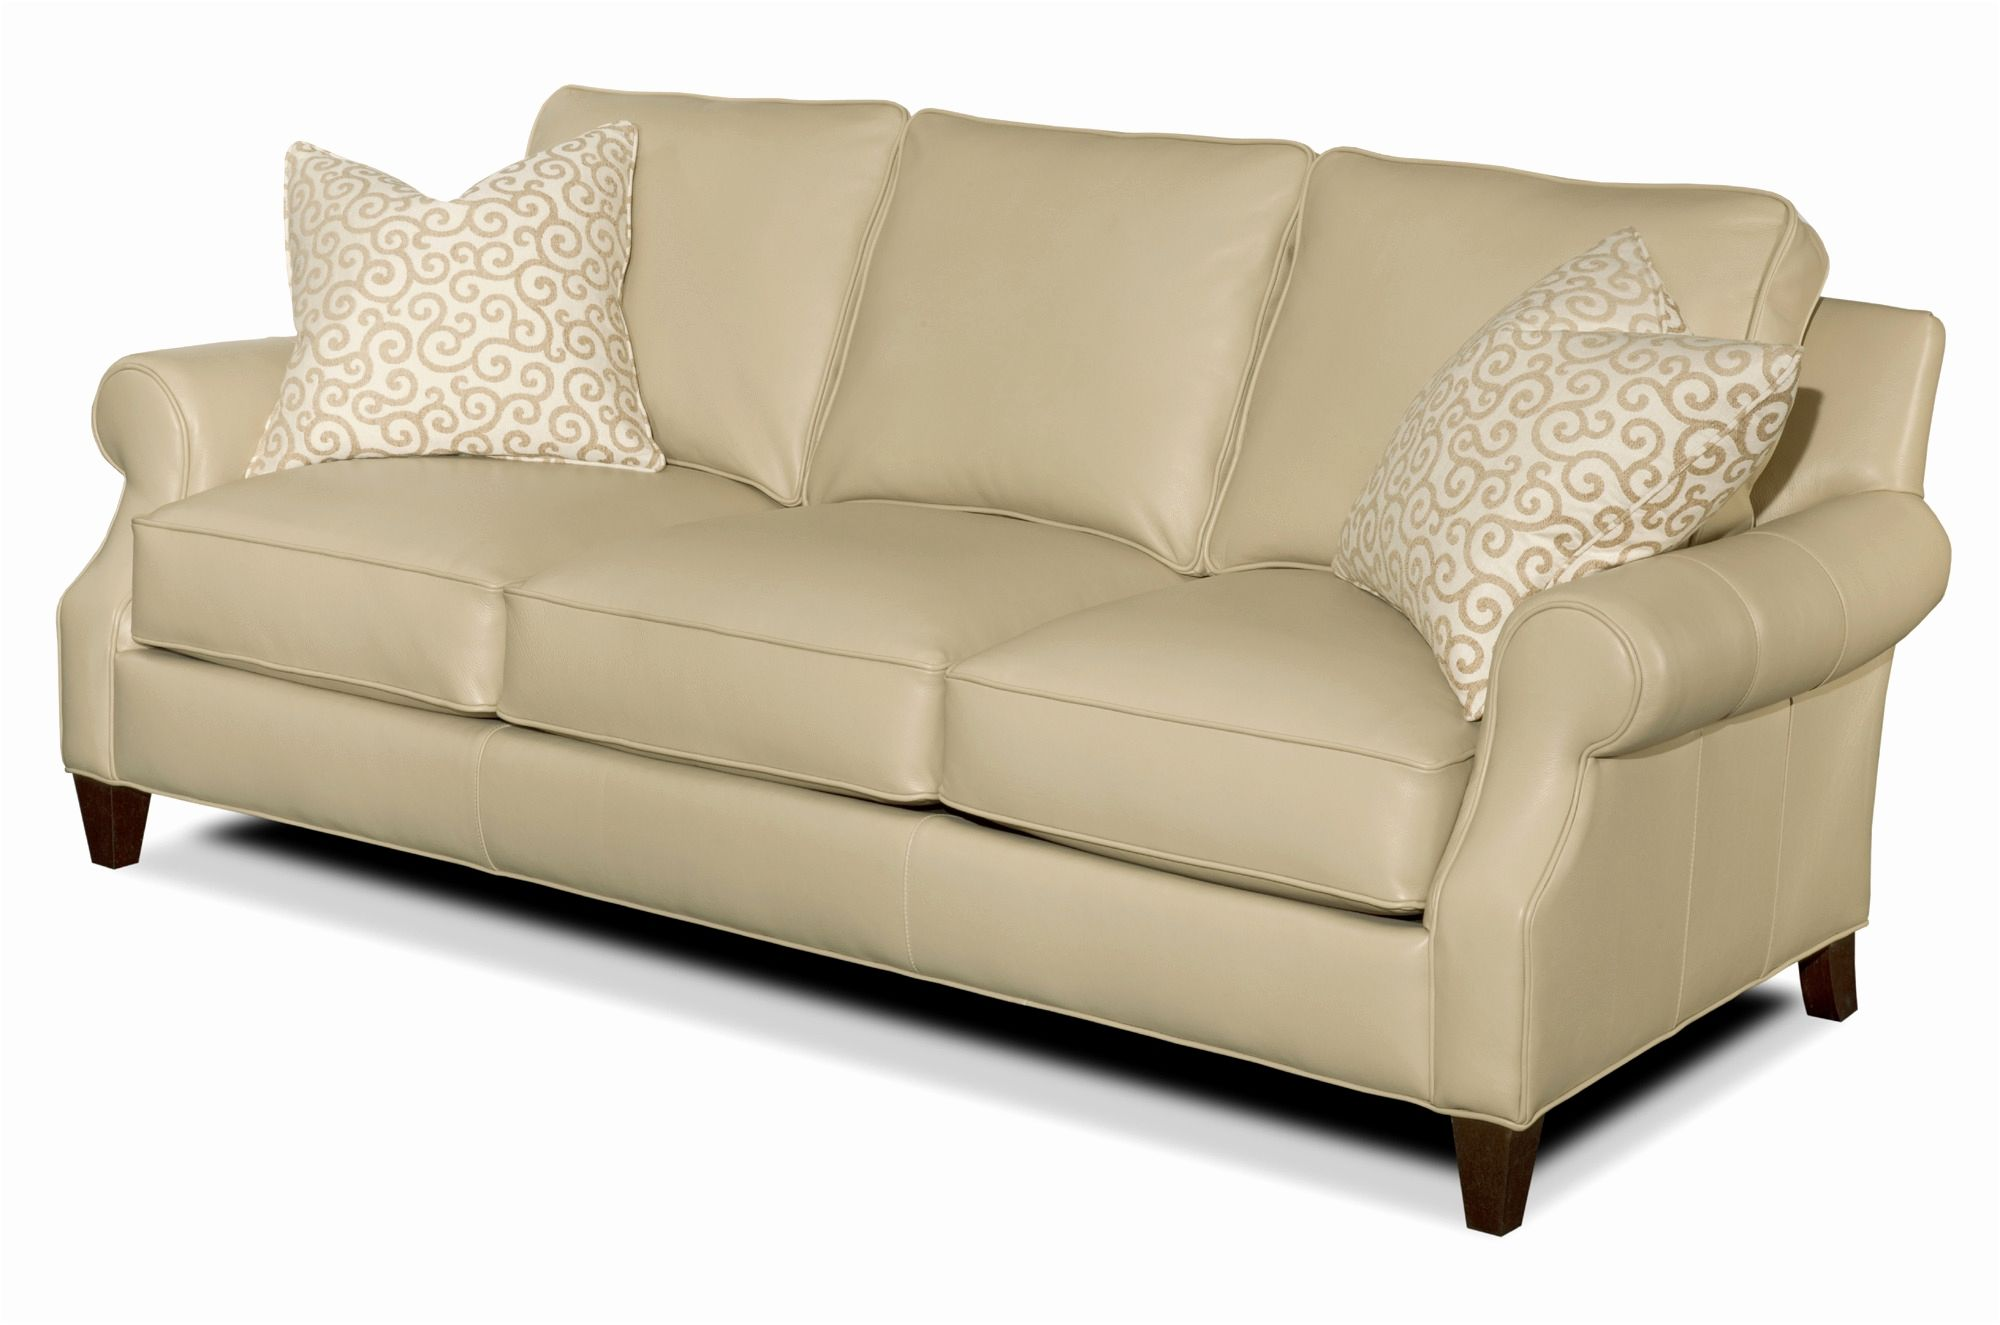 fresh bradington young leather sofa picture-Incredible Bradington Young Leather sofa Pattern